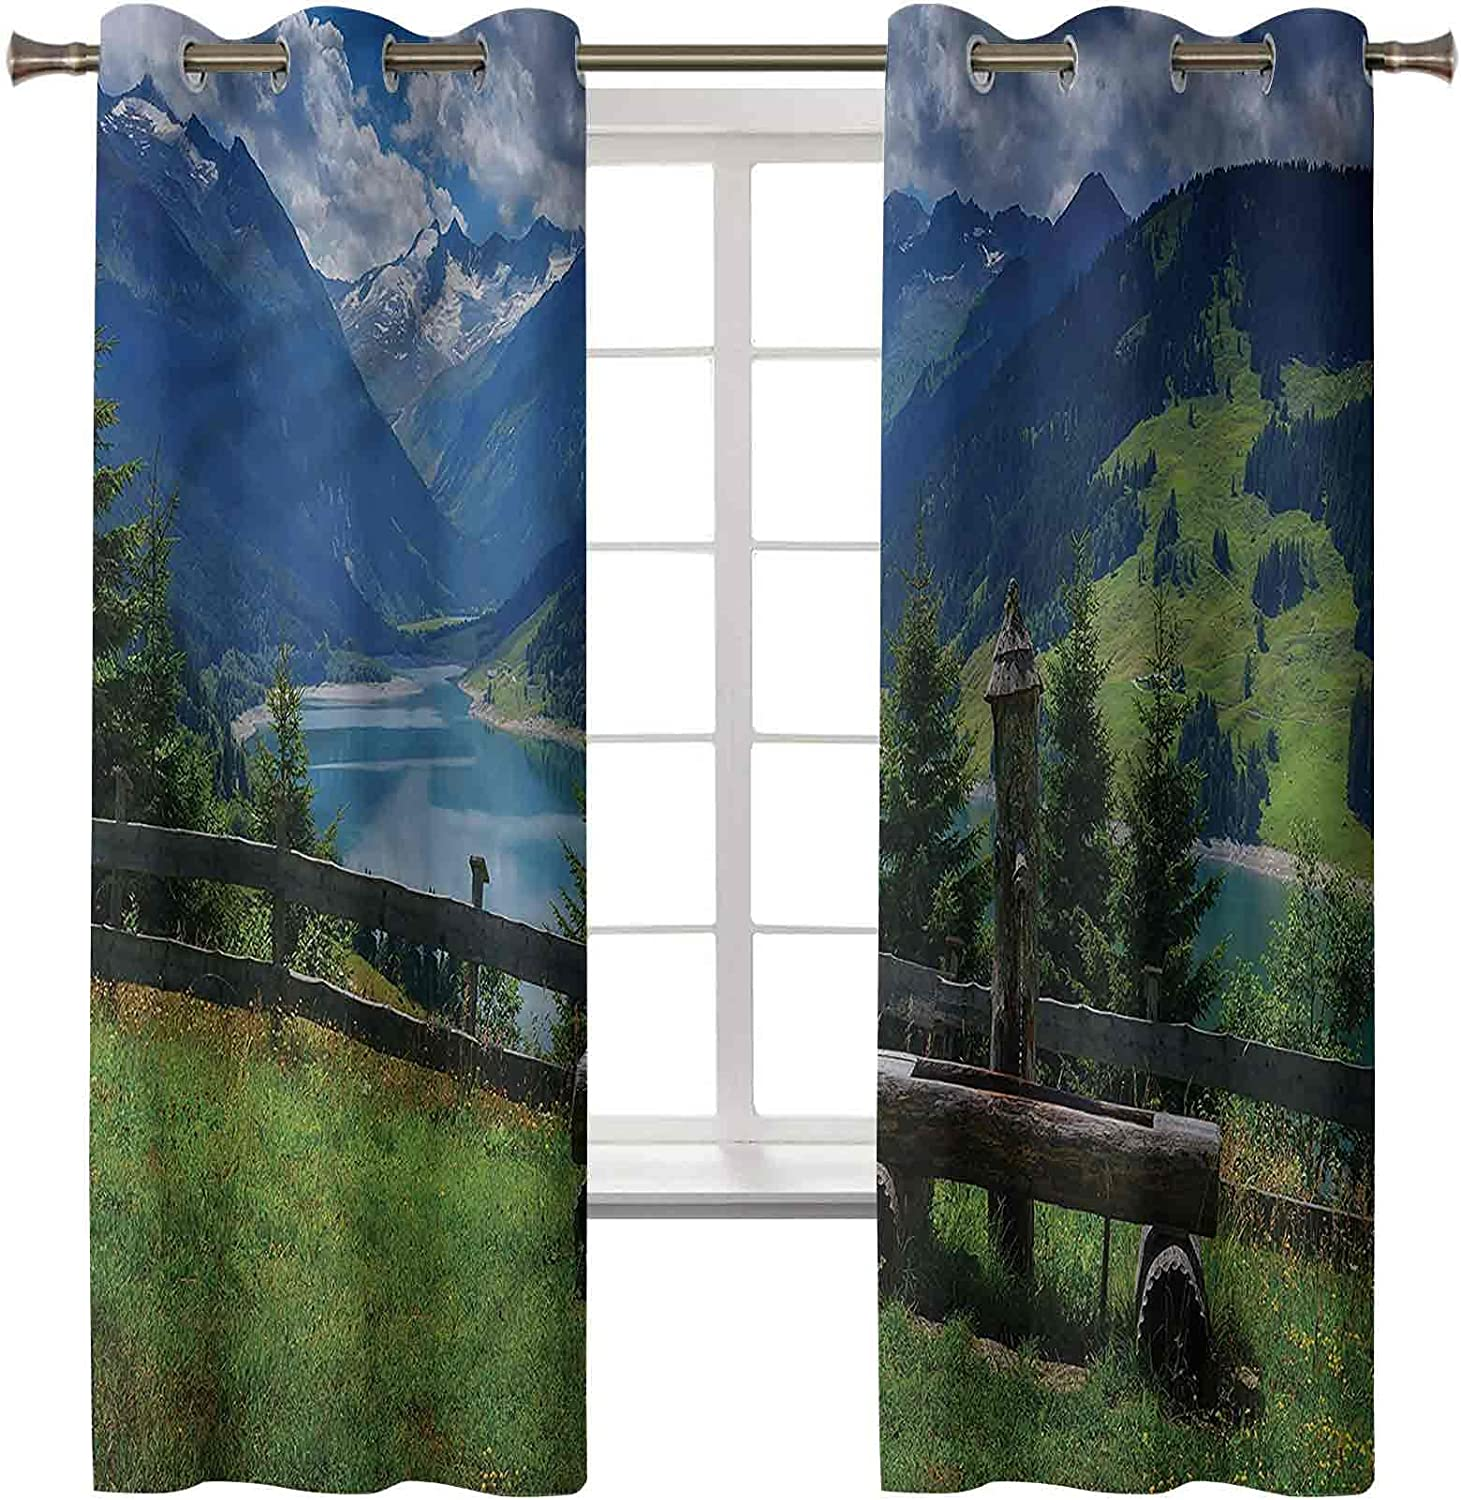 Blackout Curtains for Bedroom Max 56% OFF Thermal In stock Window Treatment Insulate